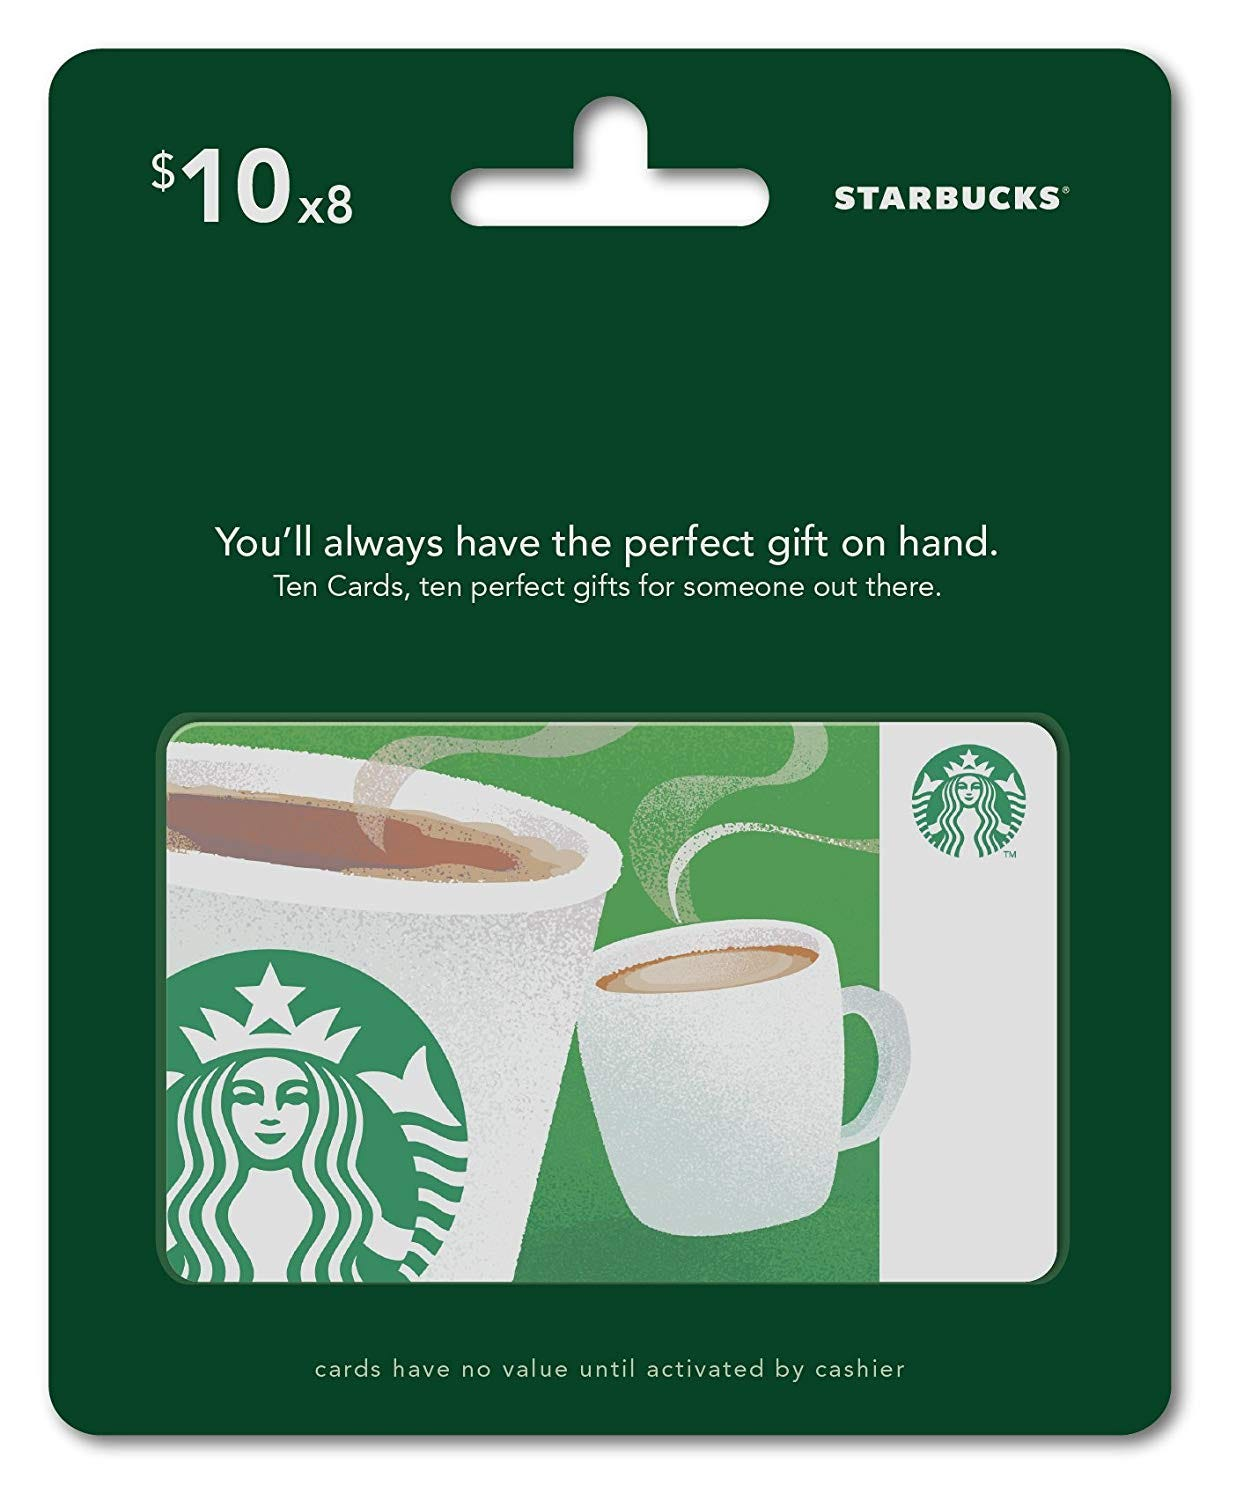 a Starbucks gift card.